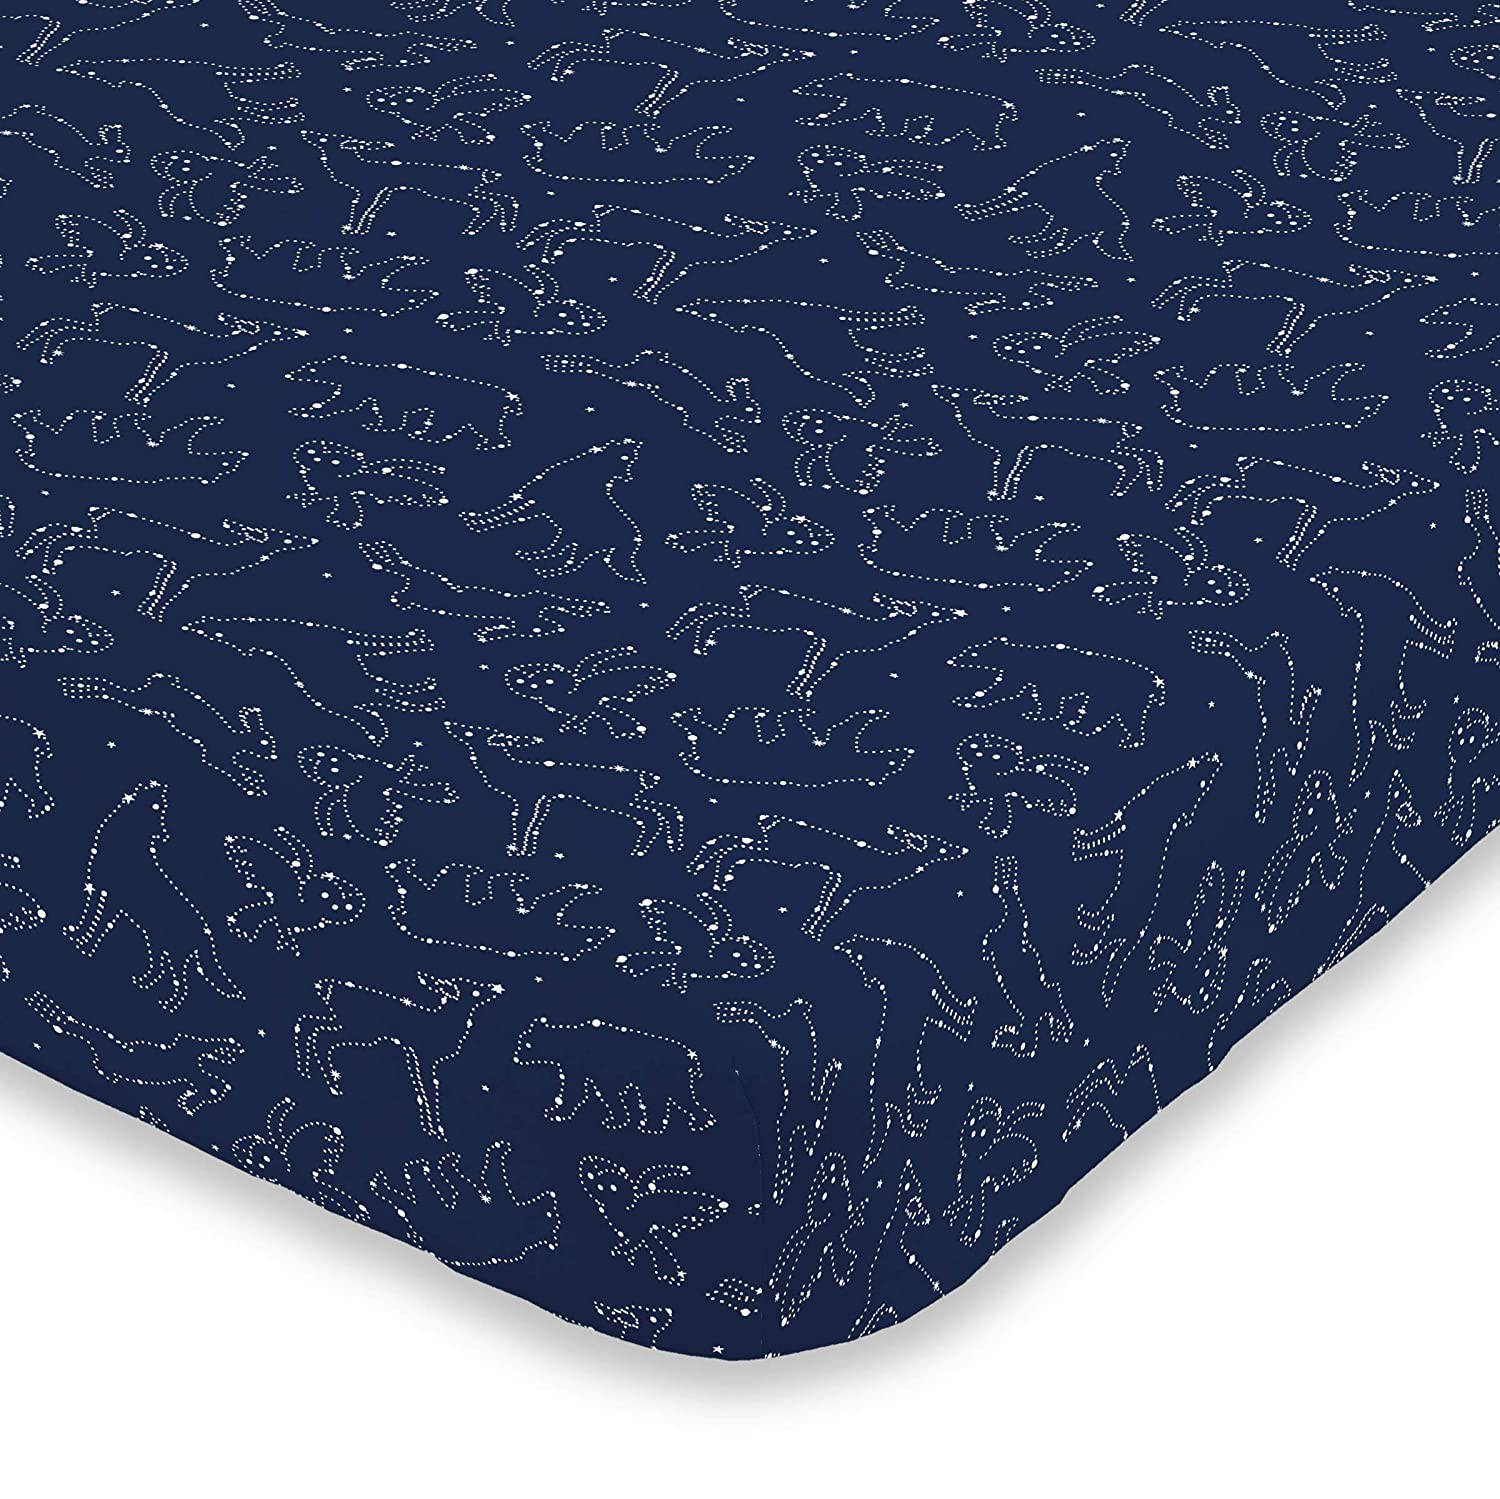 NoJo Super Soft Navy & White Cosmic Constellations Nursery Crib Fitted Sheet, Navy, White